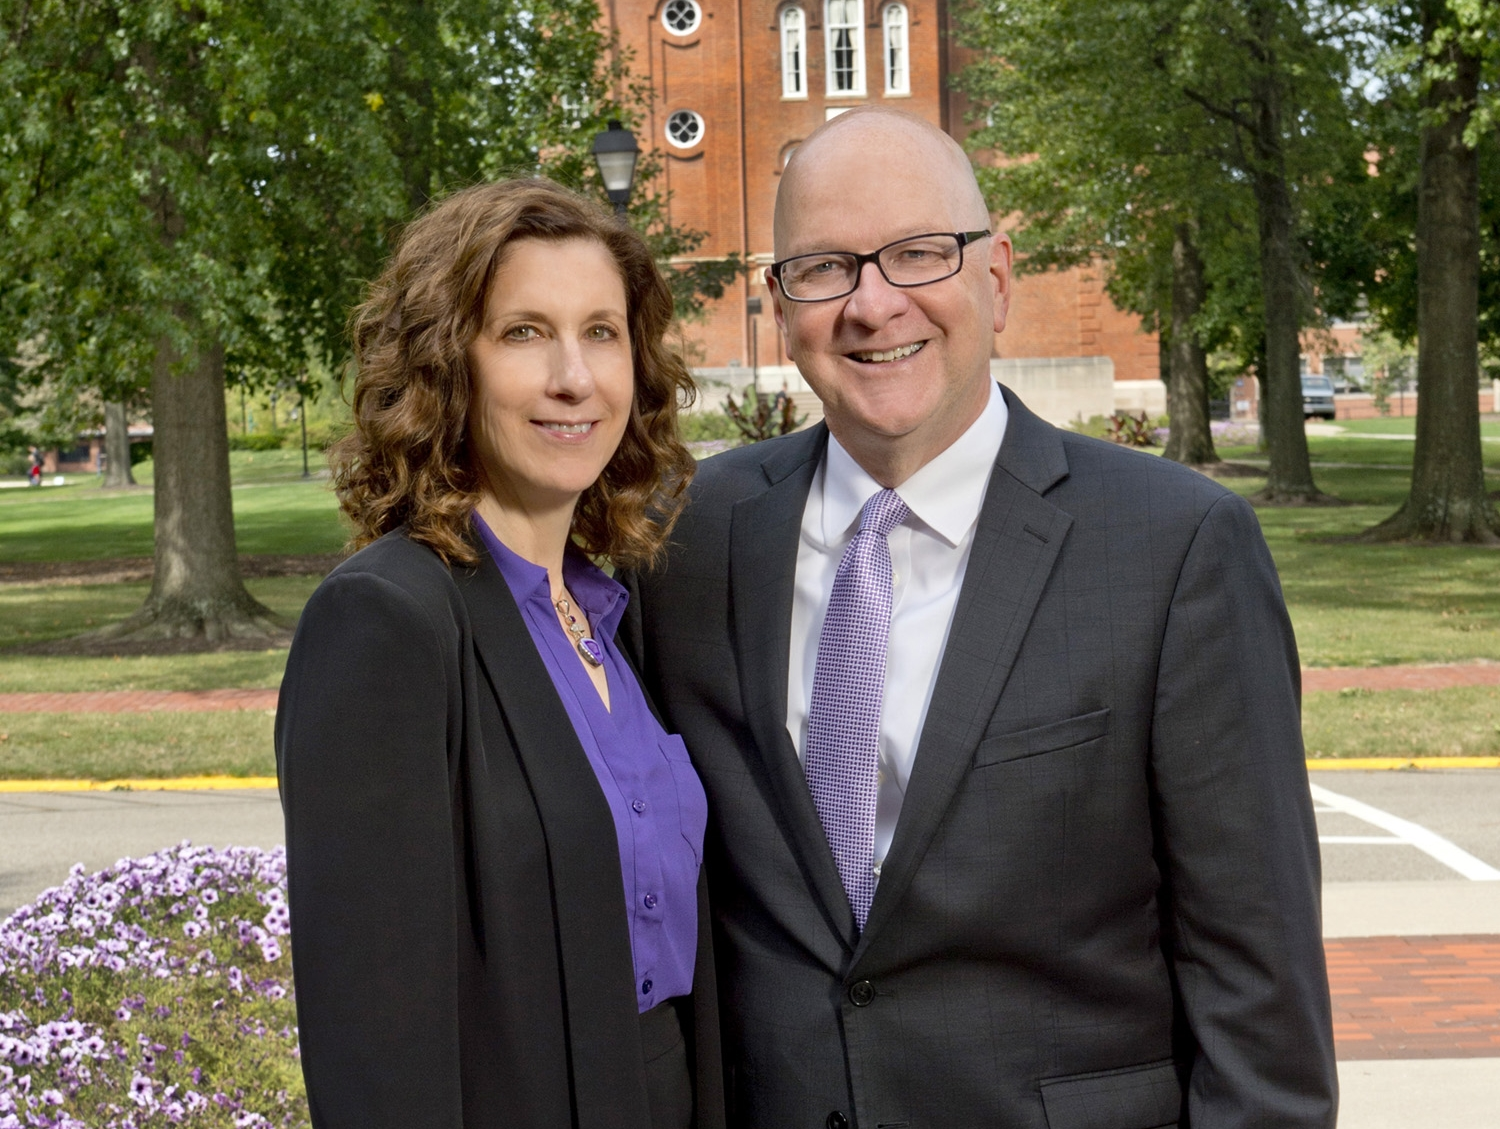 University of Mount Union President Dick Merriman and his wife Margot Kelman